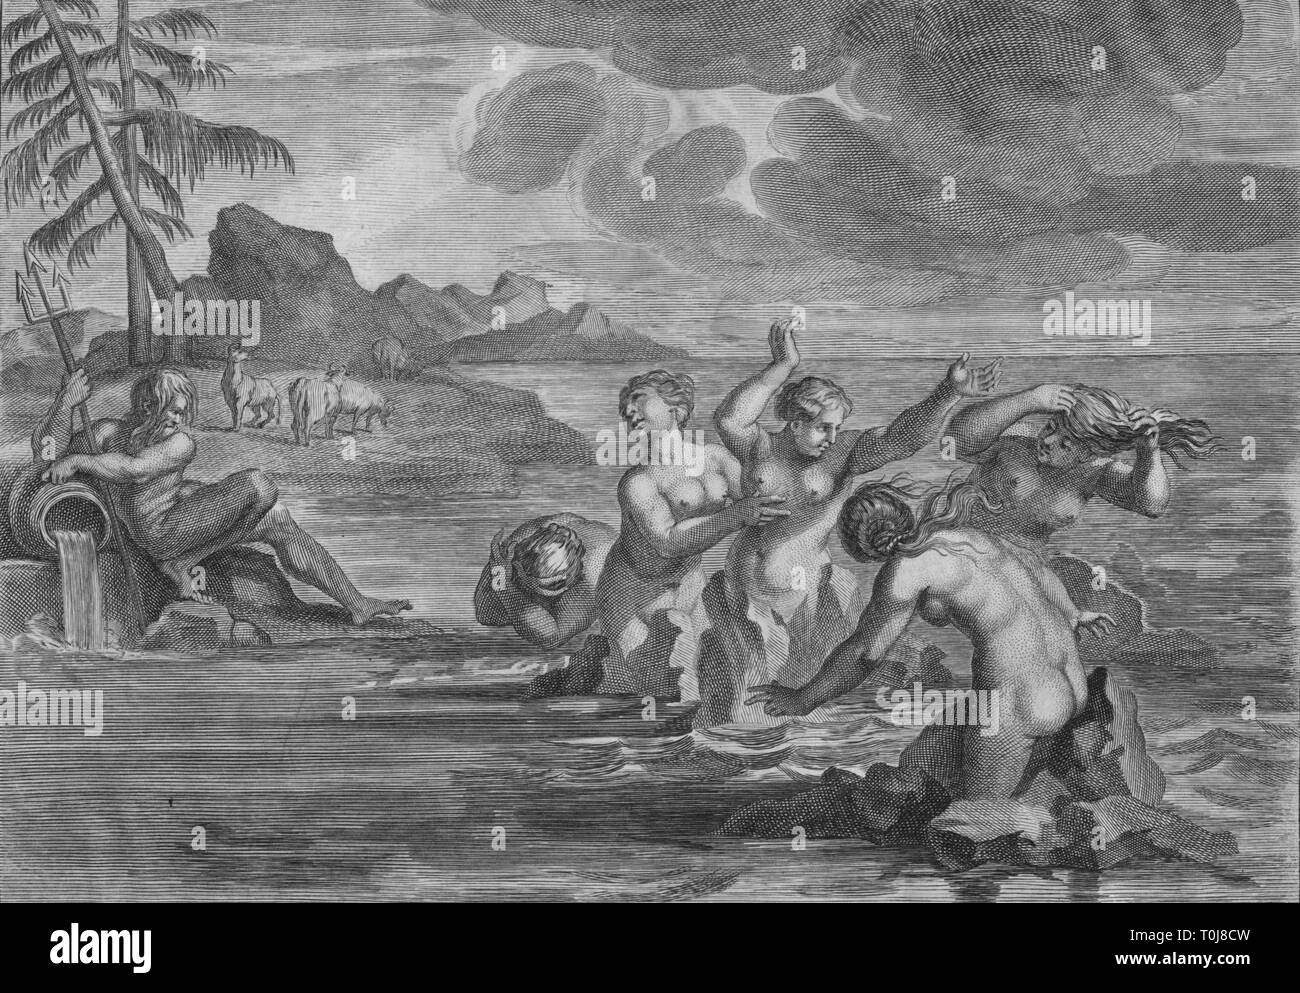 """'The Cerastae changed into Bulls, & the Propoetides into Rocks', c1683. A scene from Ovid's """"Metamorphoses"""". - Stock Image"""